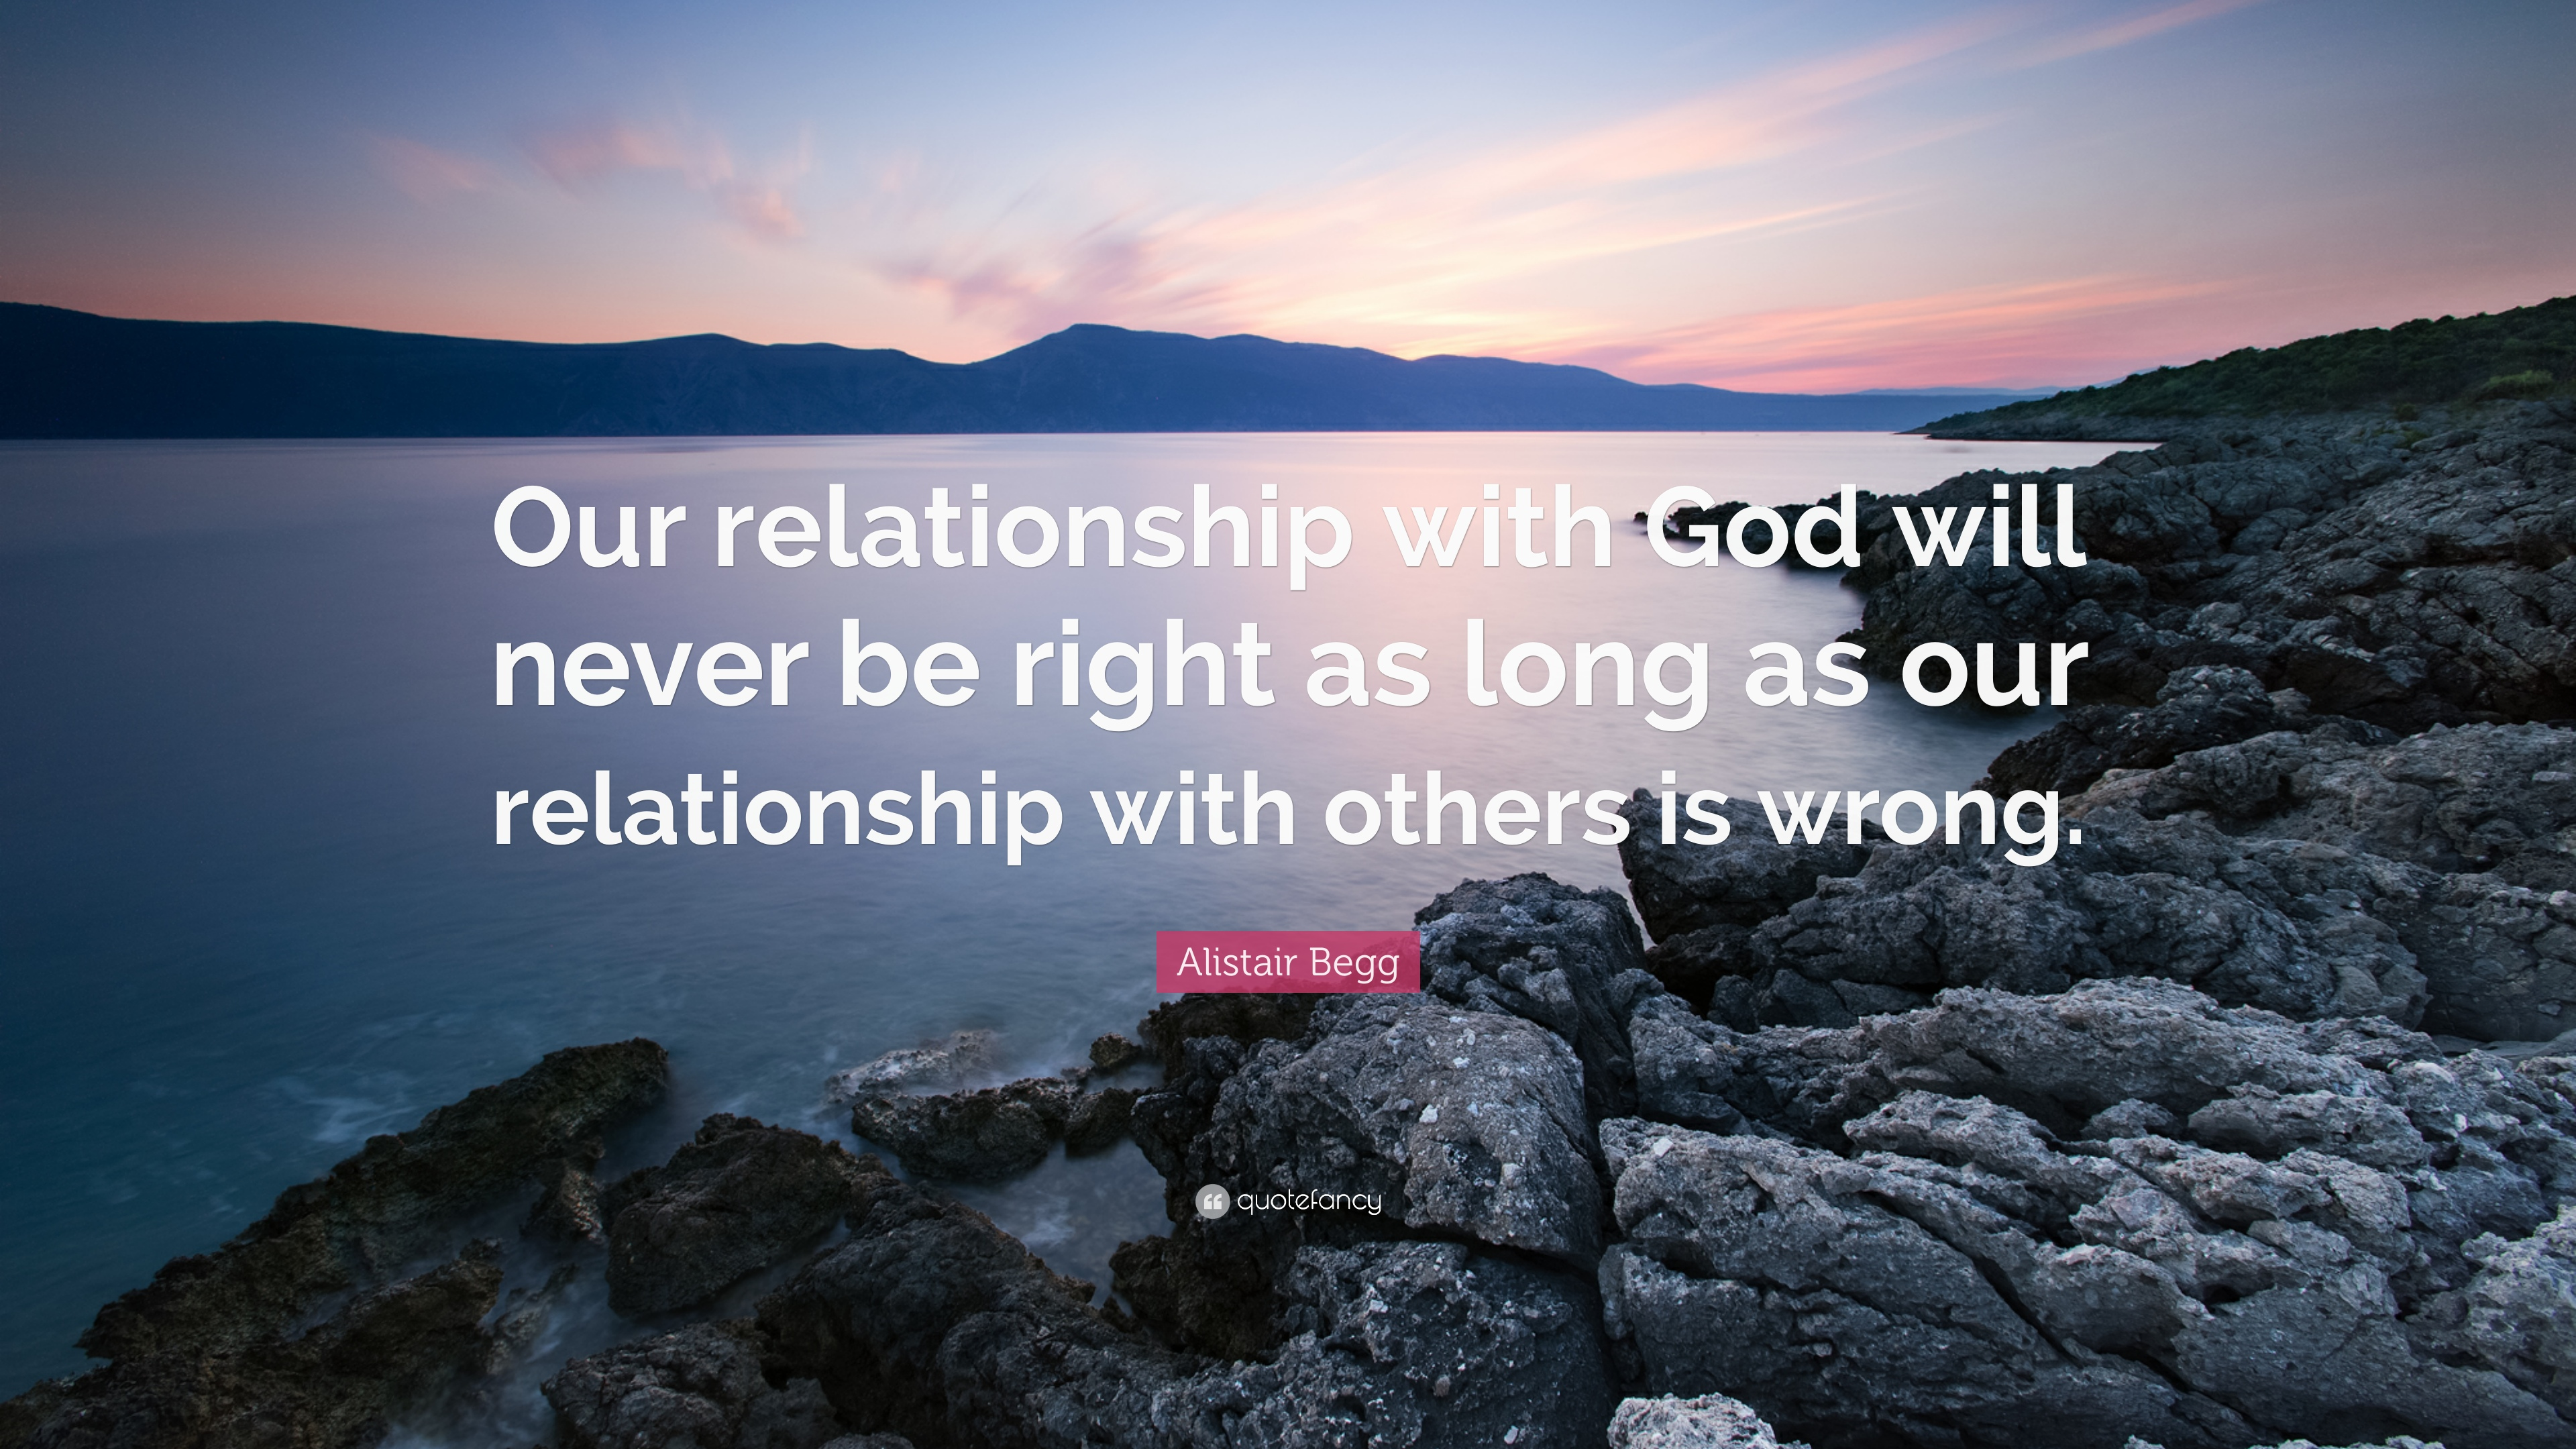 what is our relationship with god